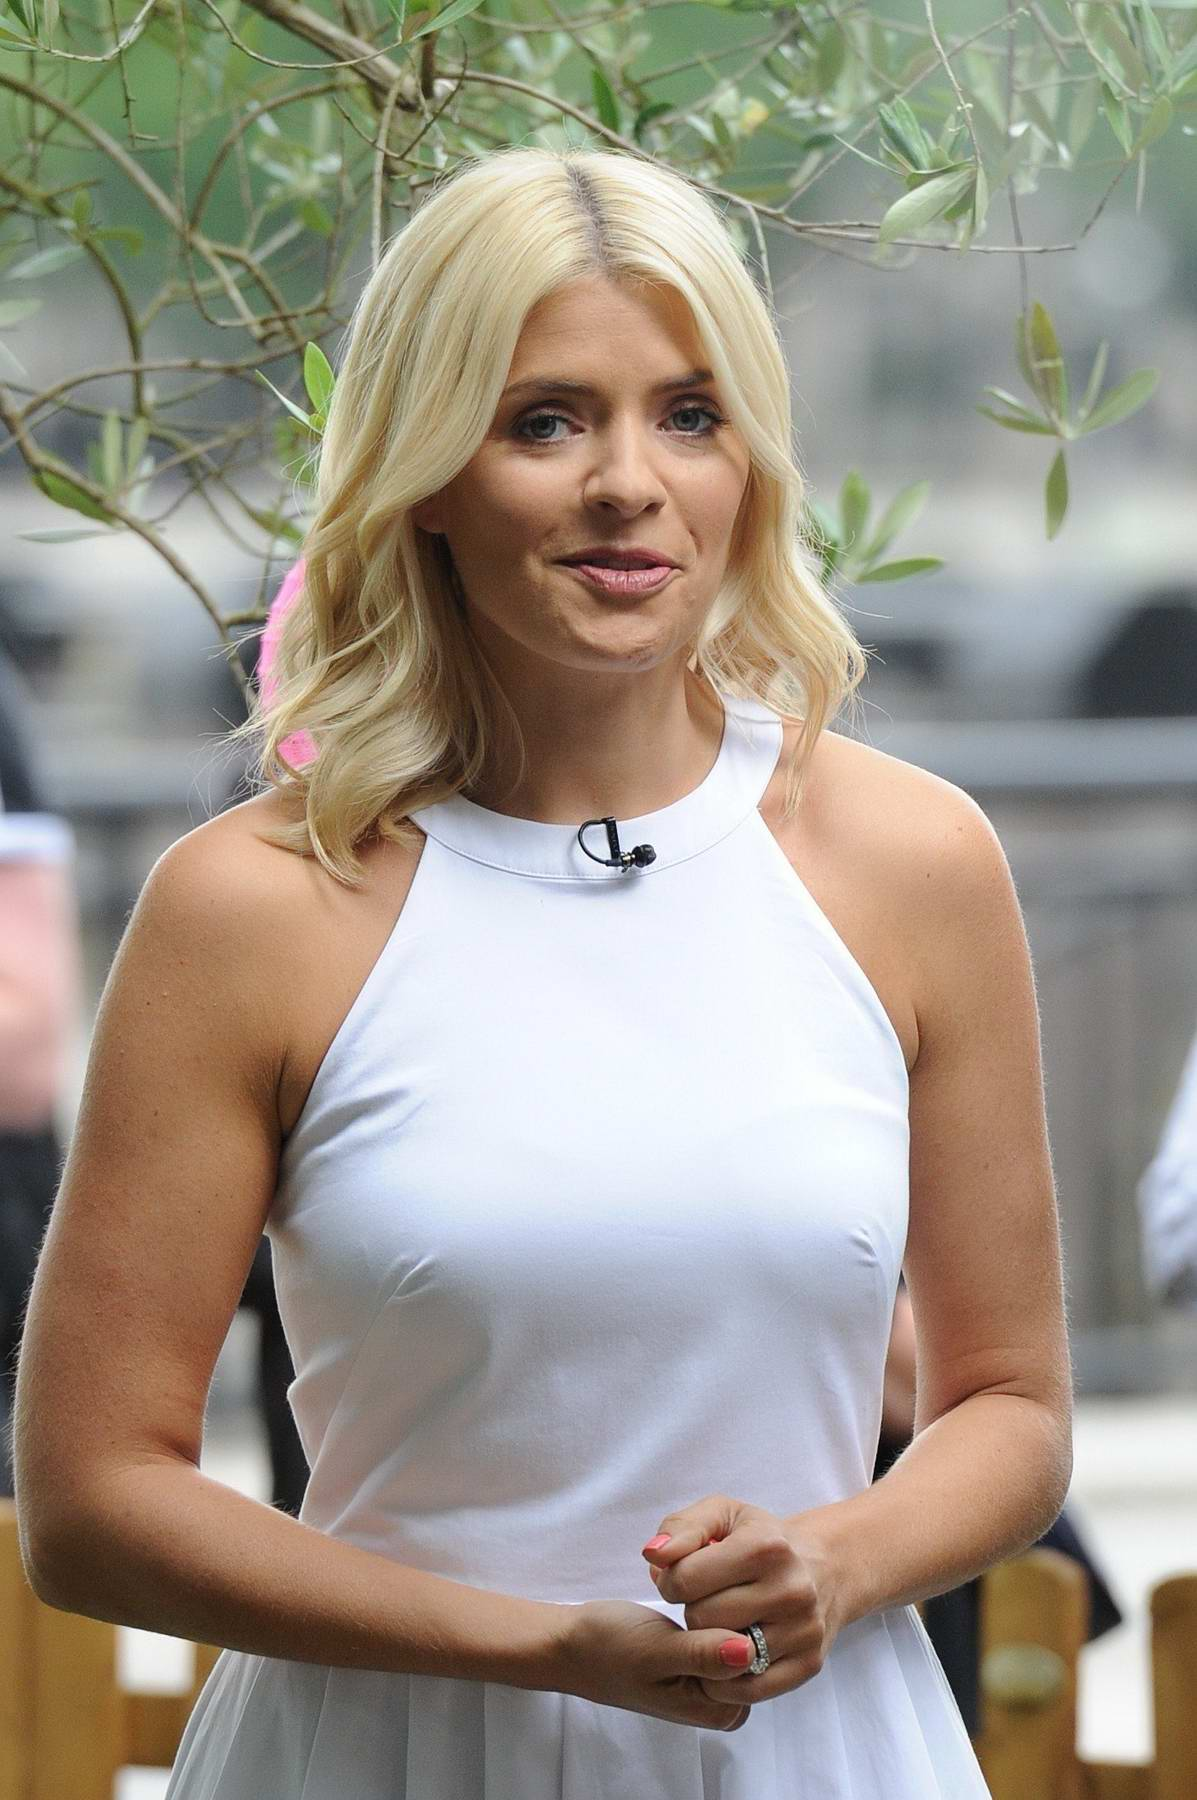 Holly Willoughby on the Set of the ITV Studios Reality TV Show in London